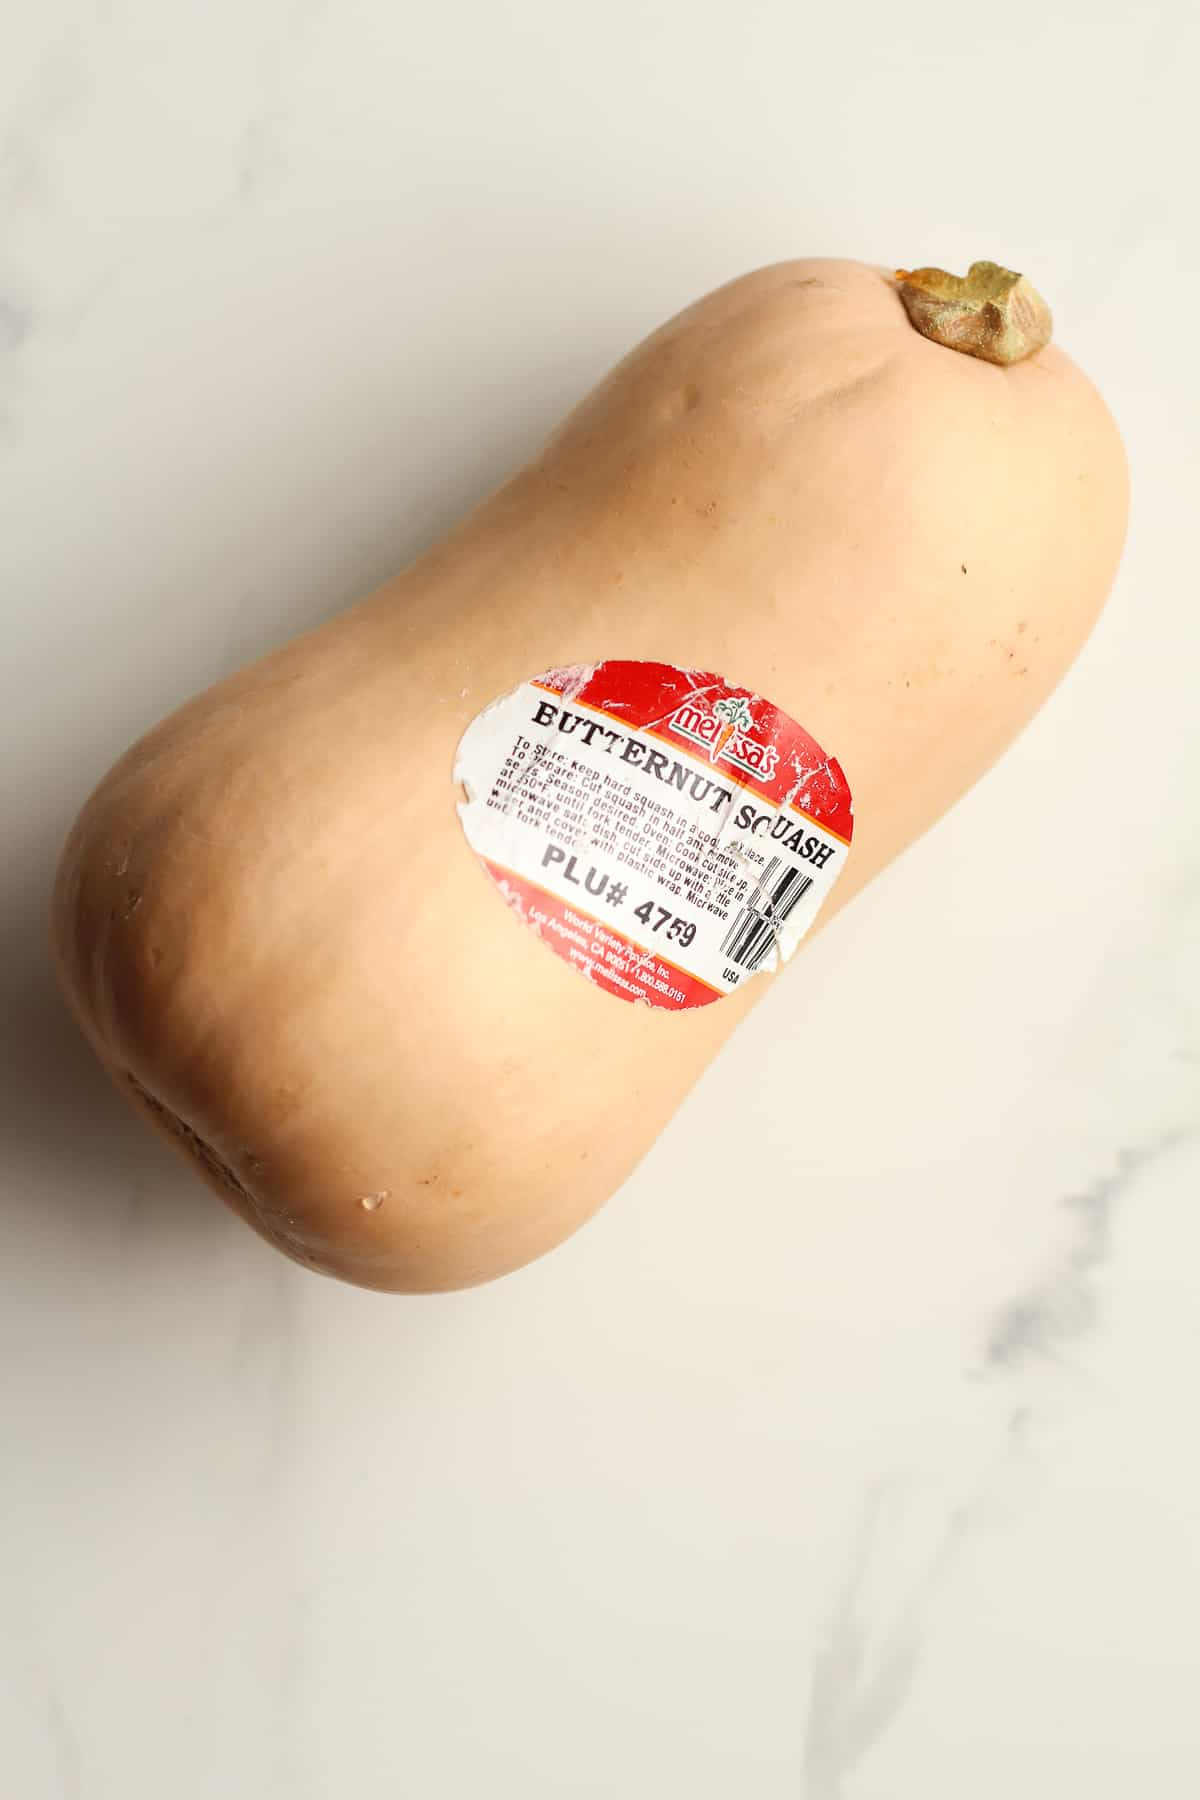 A butternut squash with the Melissa's tag.